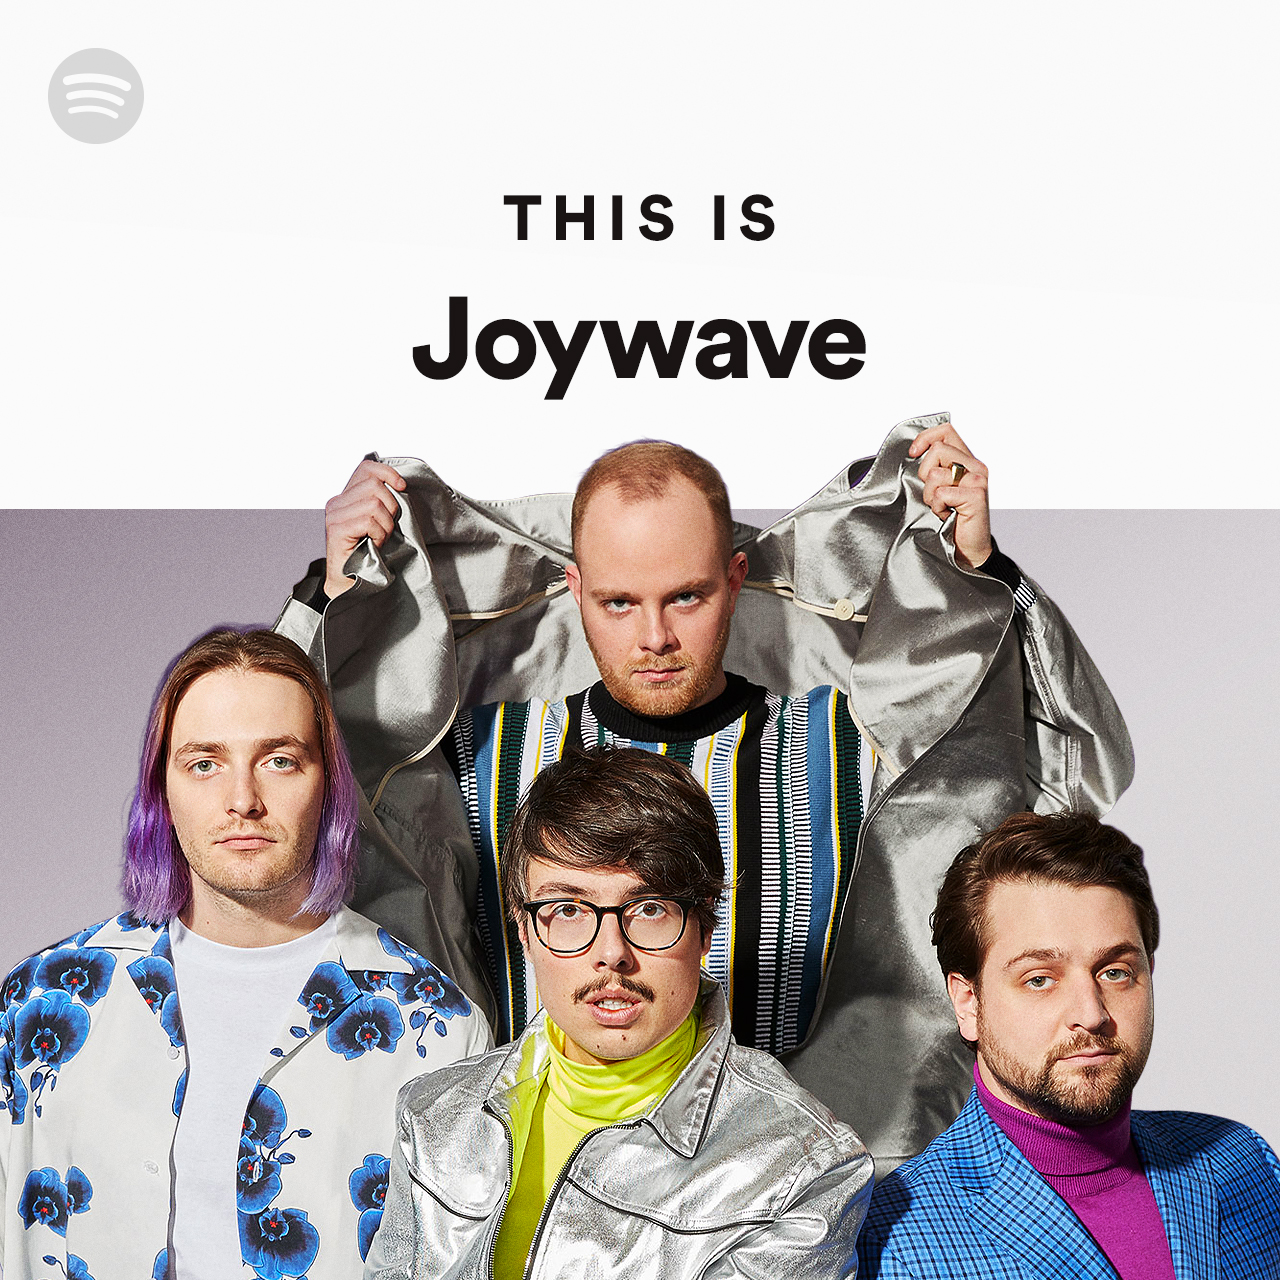 This Is Joywave, a playlist by Spotify